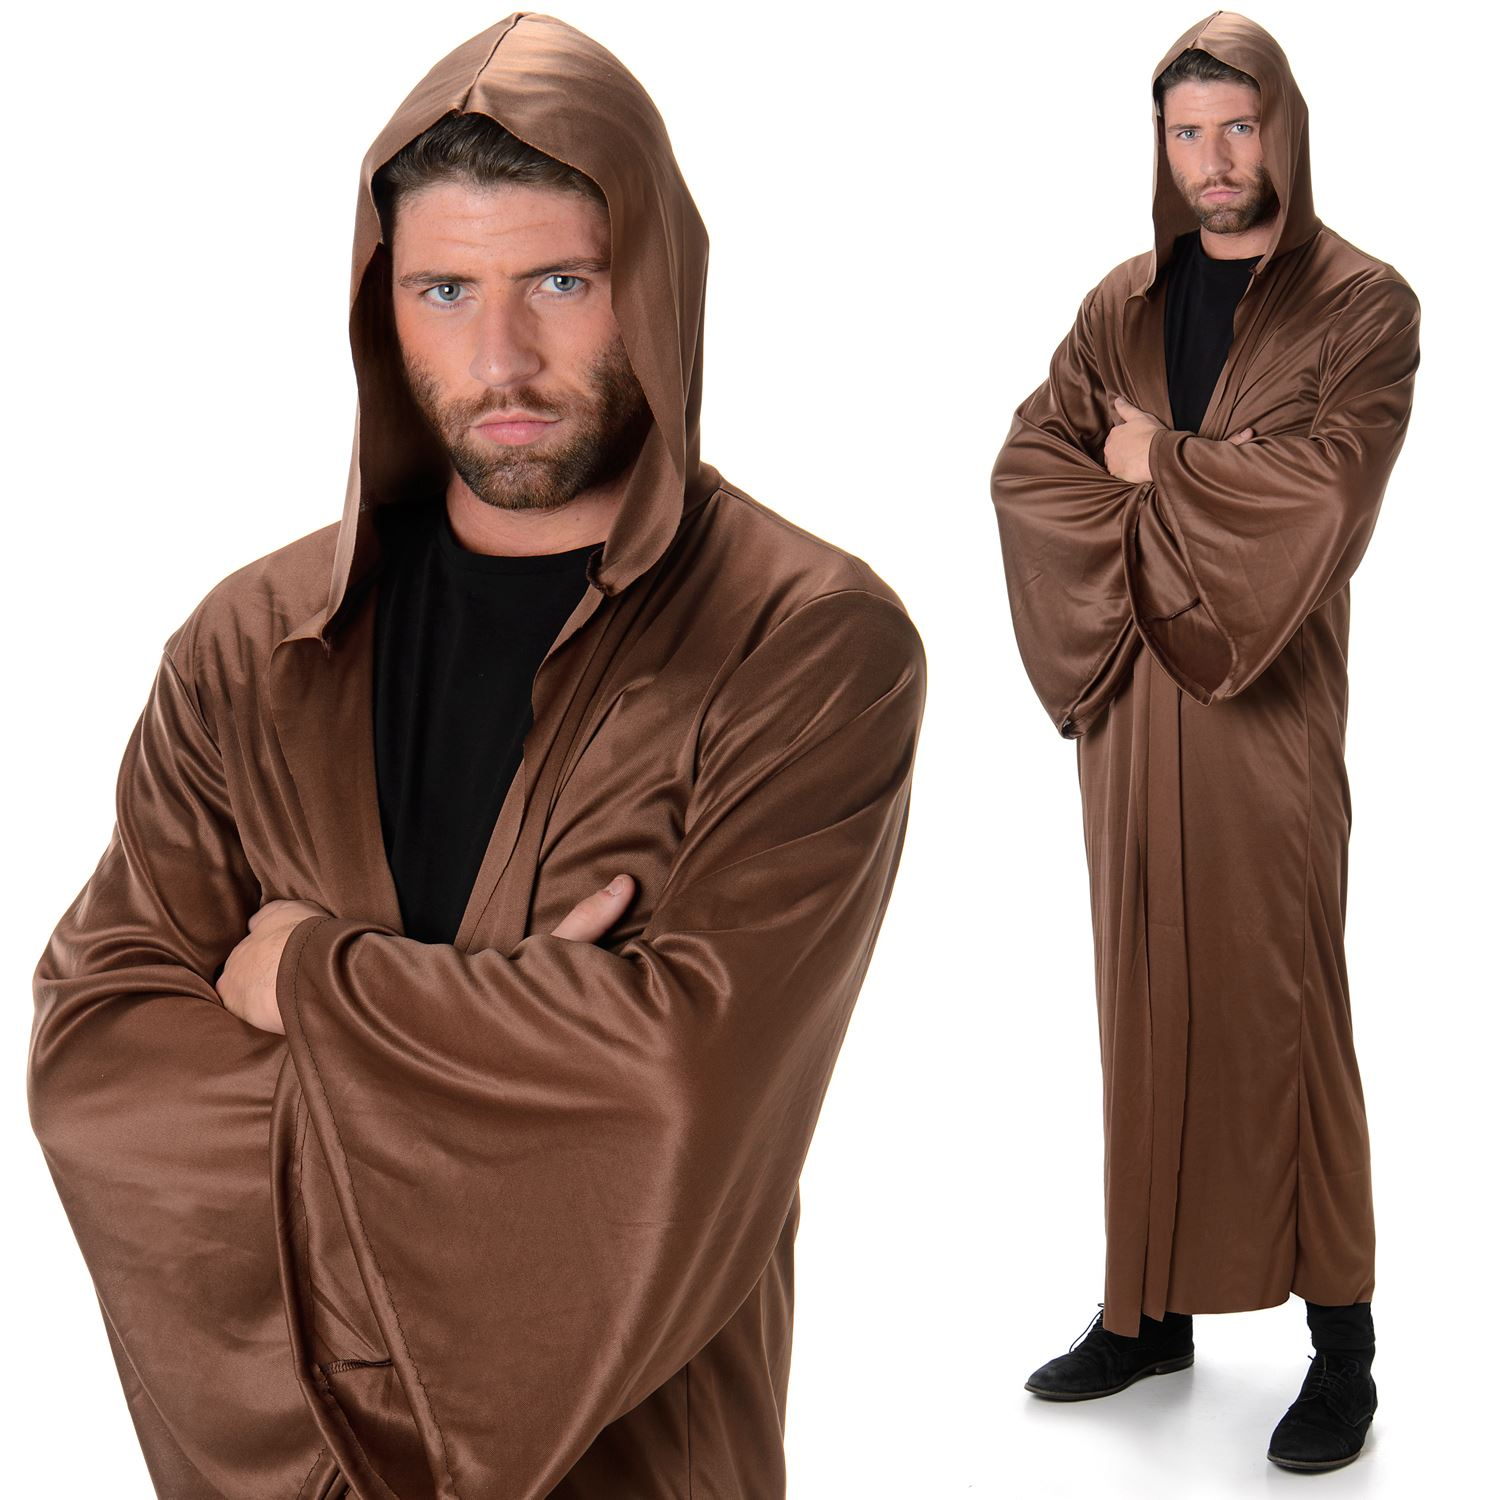 e4df9bdcaa Adult Brown Hooded Robe Fancy Dress Costume Medieval Cloak Mens Outfit